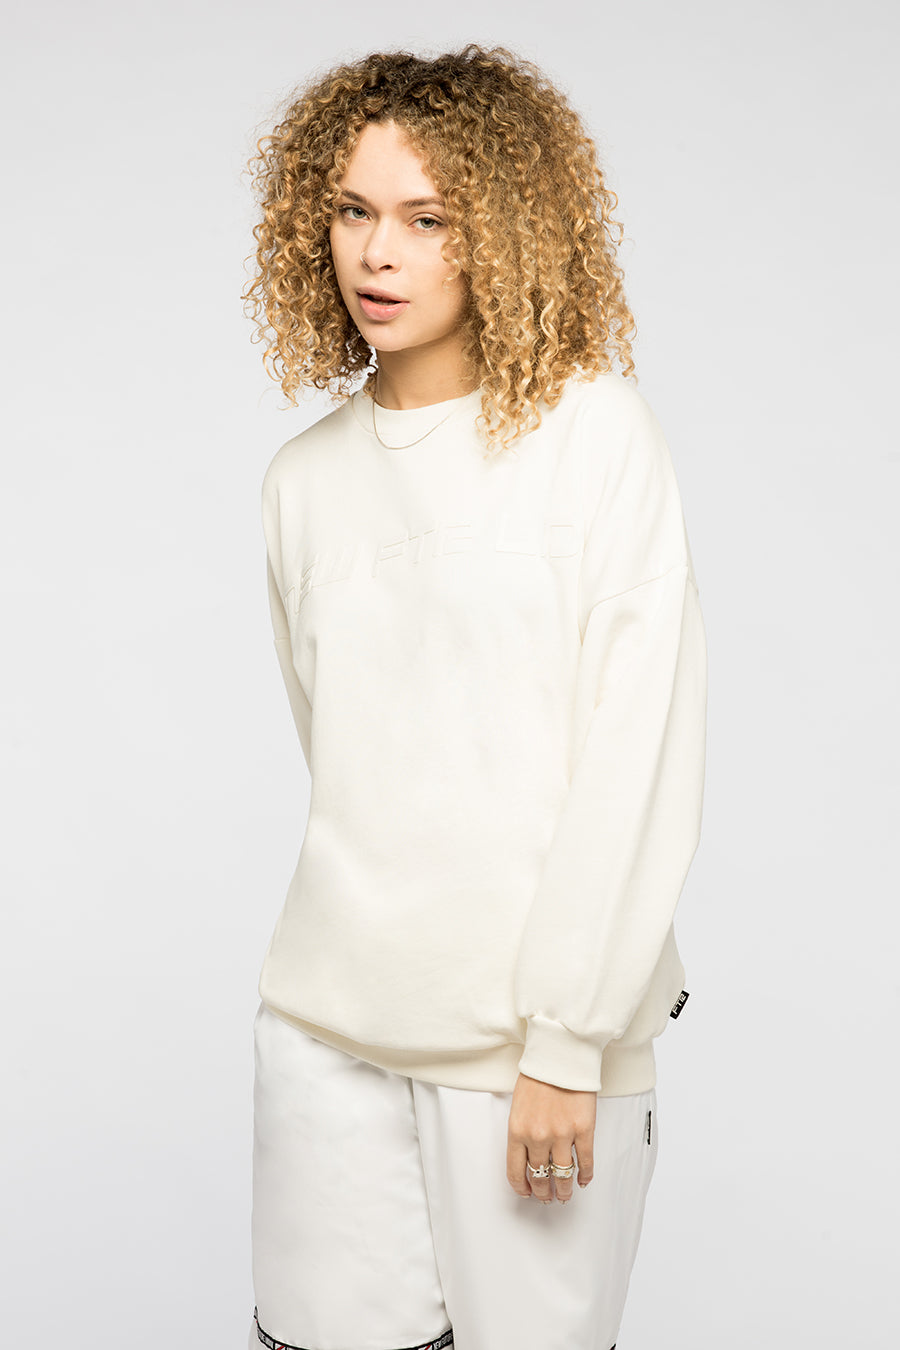 new_future_london_racer_sweat_wht_2_1-2.jpg